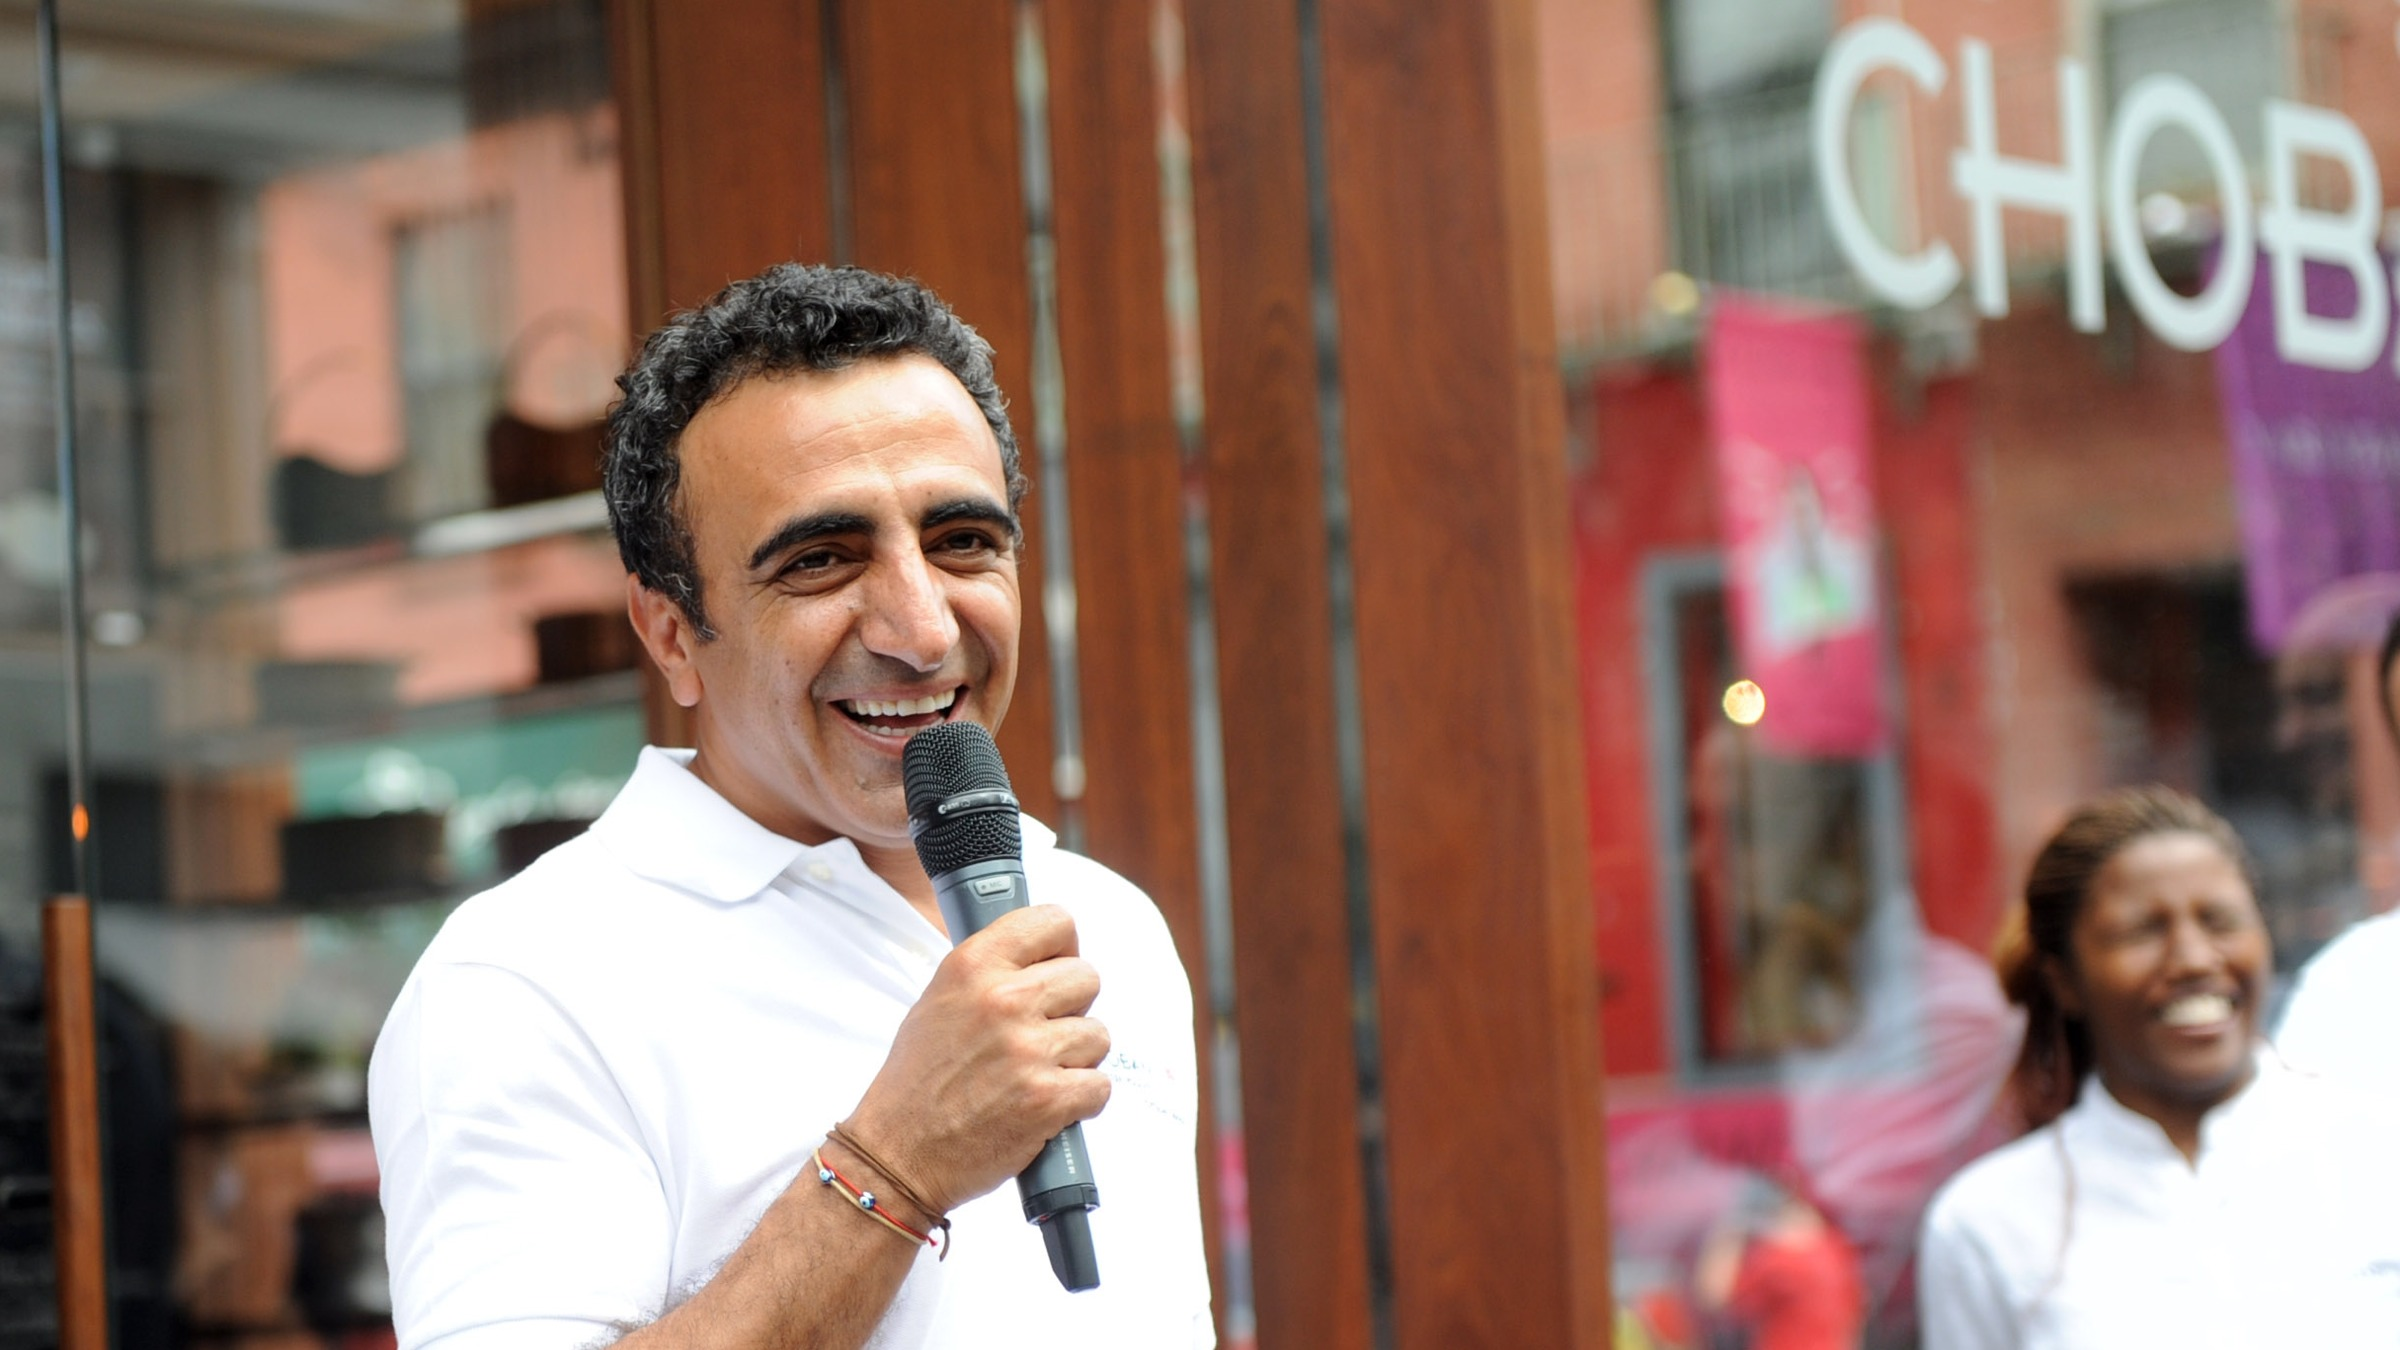 Hamdi Ulukaya, President and CEO of Chobani, speaks at the opening celebration of  Chobani SoHo, a first-of-its-kind Mediterranean yogurt bar,  Wednesday, August 1, 2012, in New York.  (Photo by Diane Bondareff/Invision for Chobani)